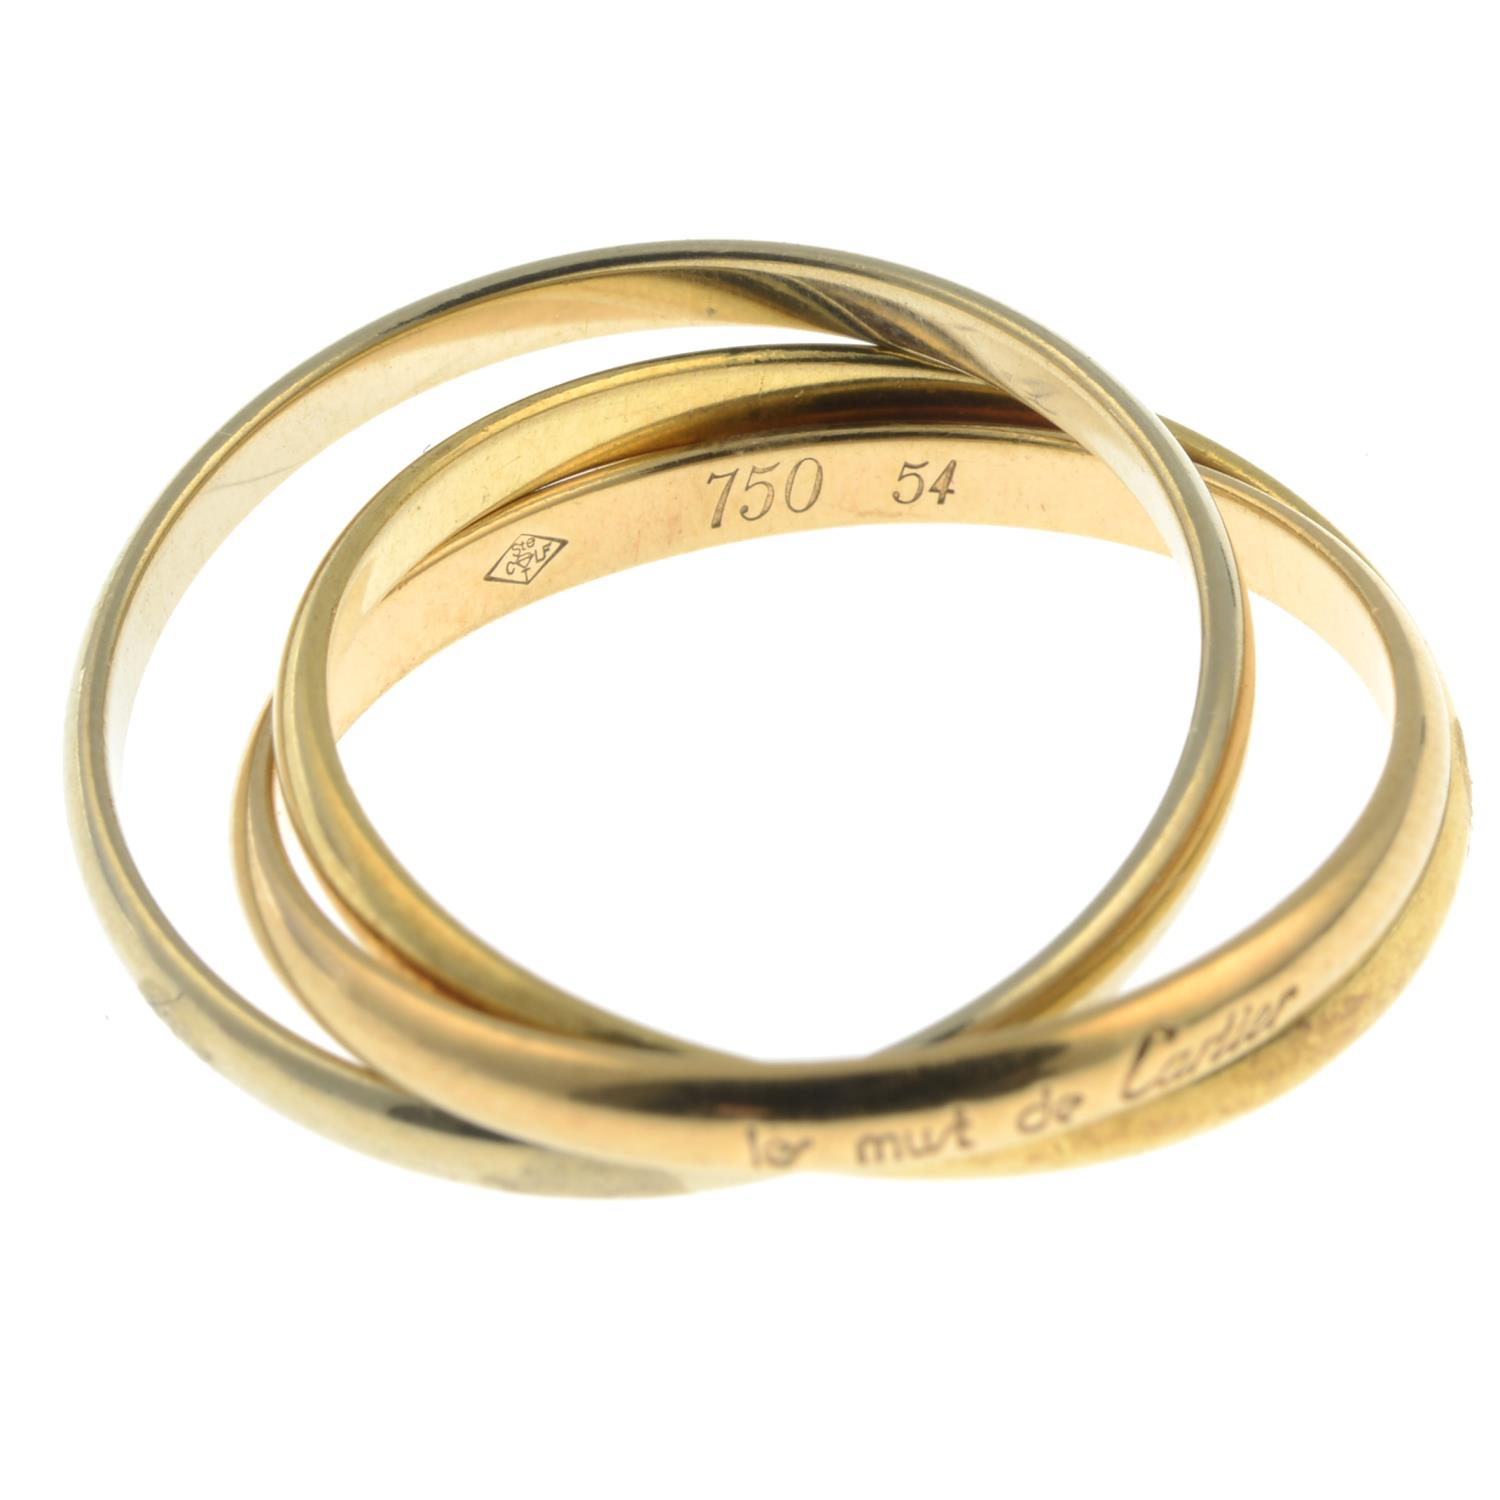 A 'Trinity les must de Cartier' ring, by Cartier.Signed Cartier. - Image 3 of 3